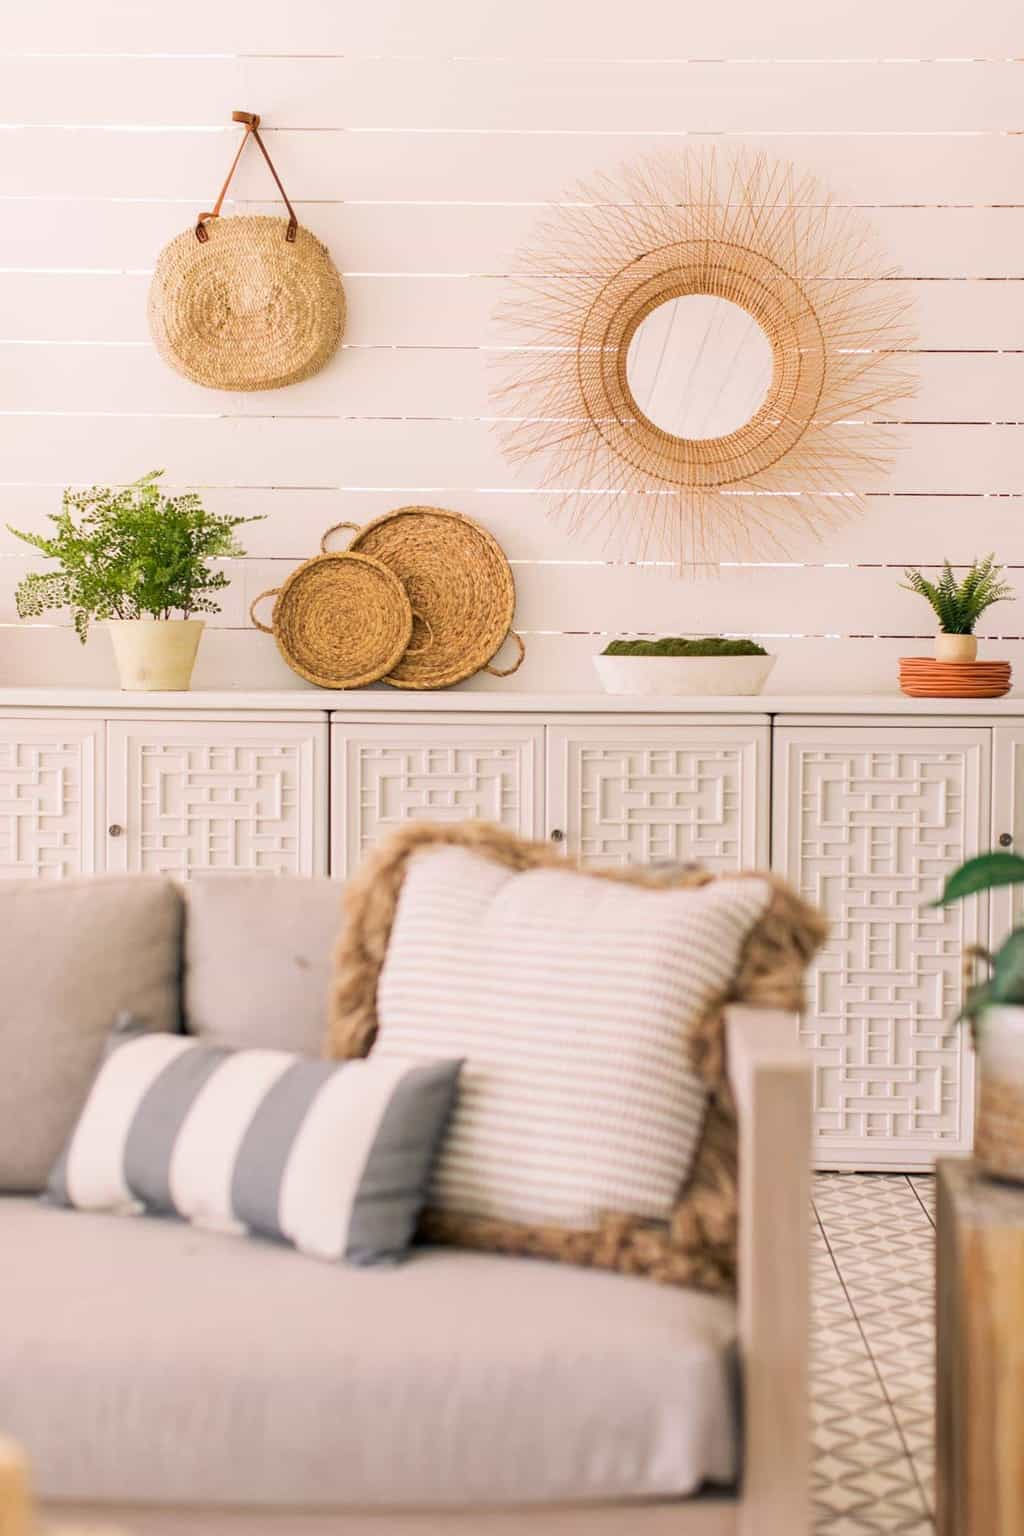 outdoor sofa cushions in front of shiplap outdoor walls